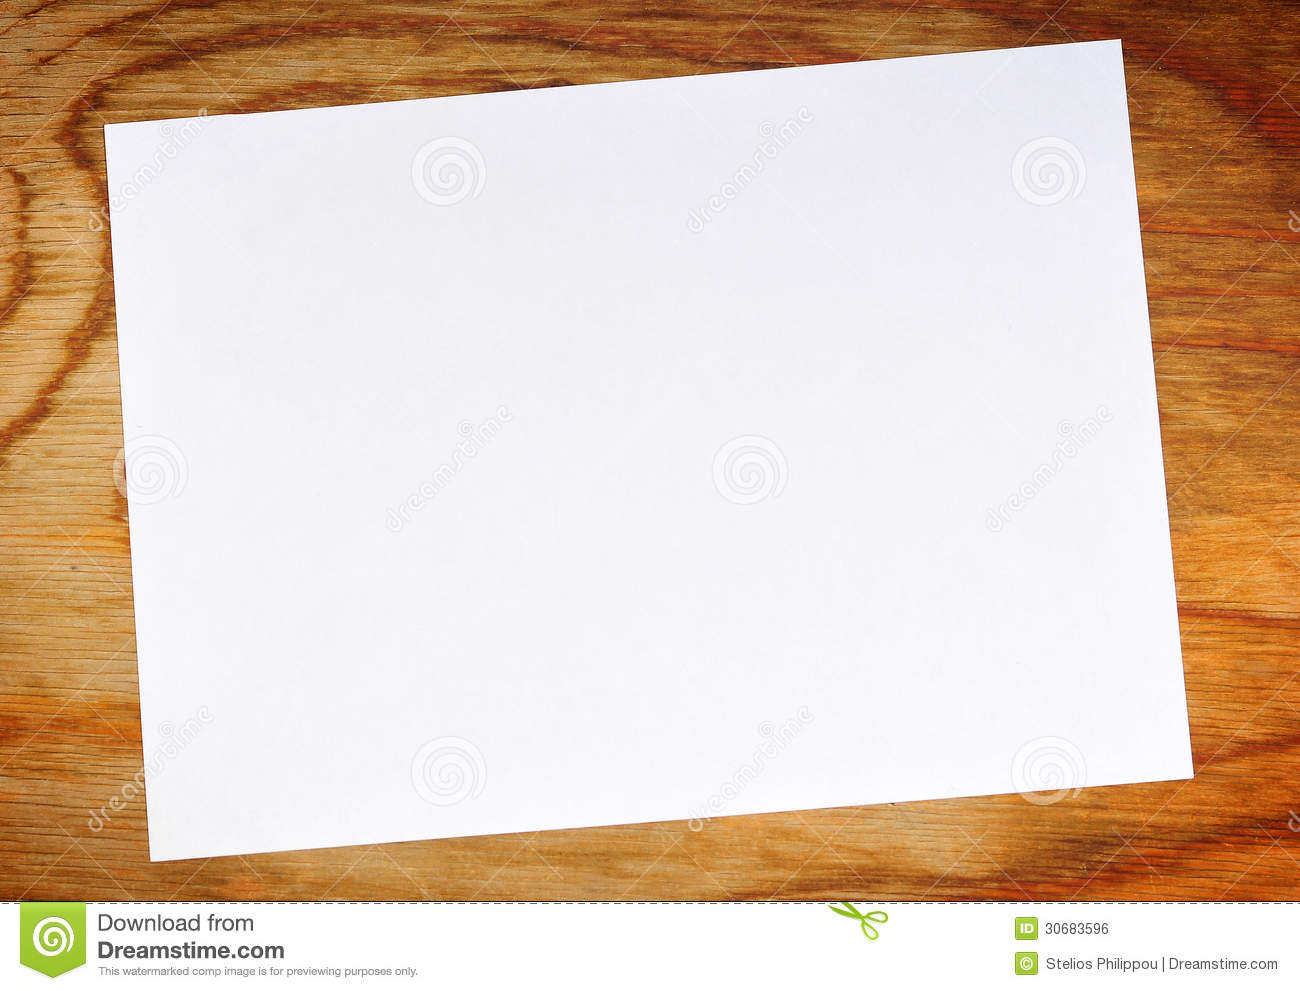 Piece Of Paper Royalty Free Stock Image - Image: 30683596